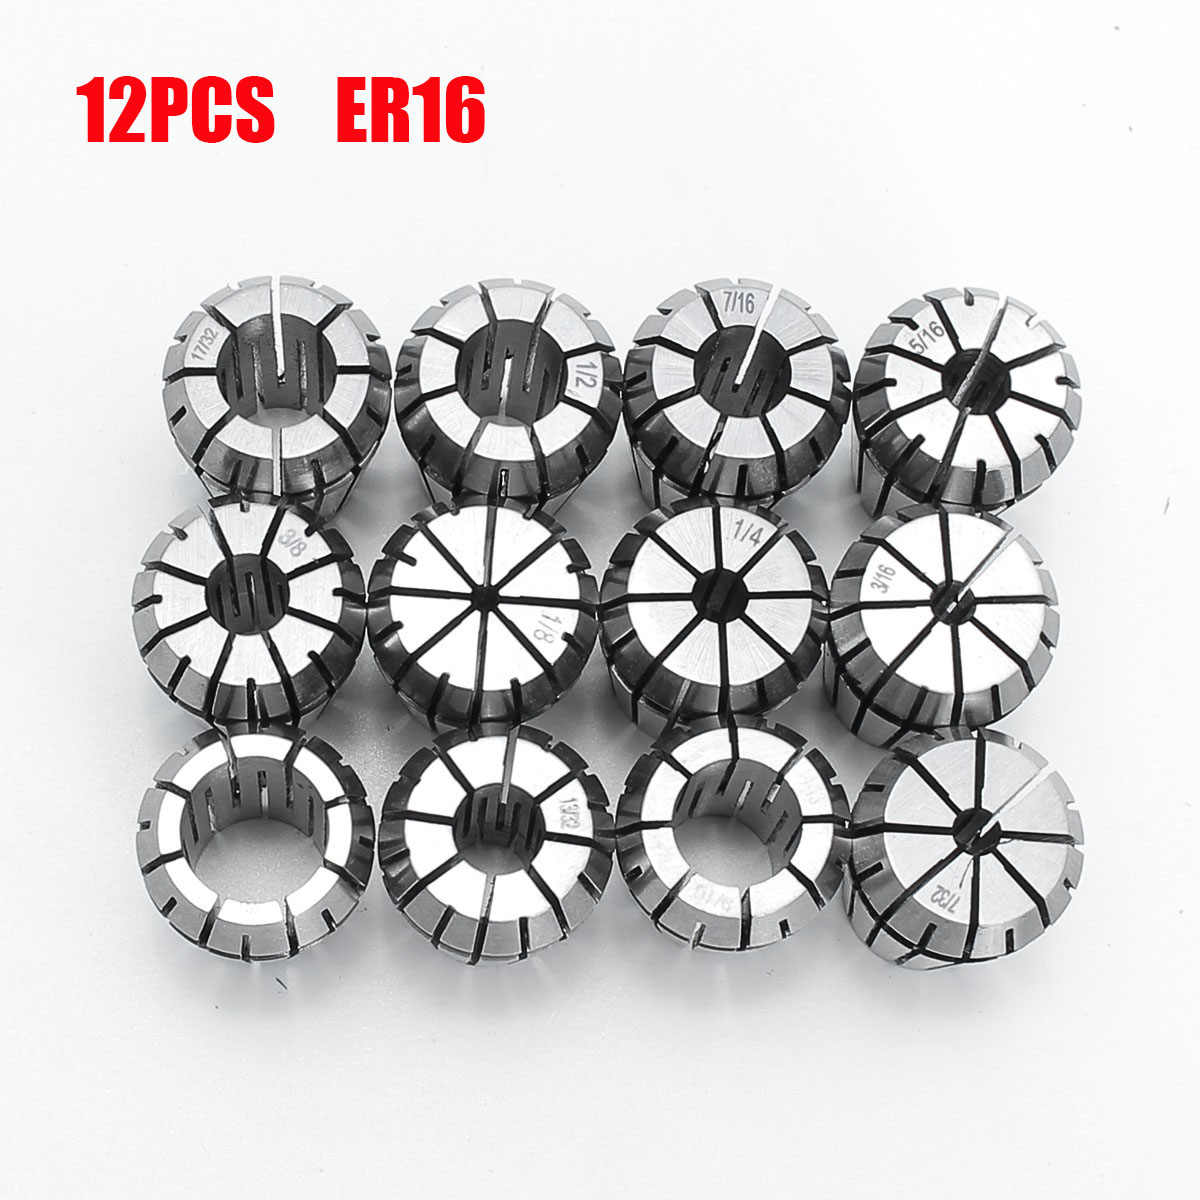 12pcs ER16 Spring Collet Set Chuck Collet 1/32 to 3/8 Inch Machine Tool for CNC Milling Lathe Tool Spring Steel Tool Holder